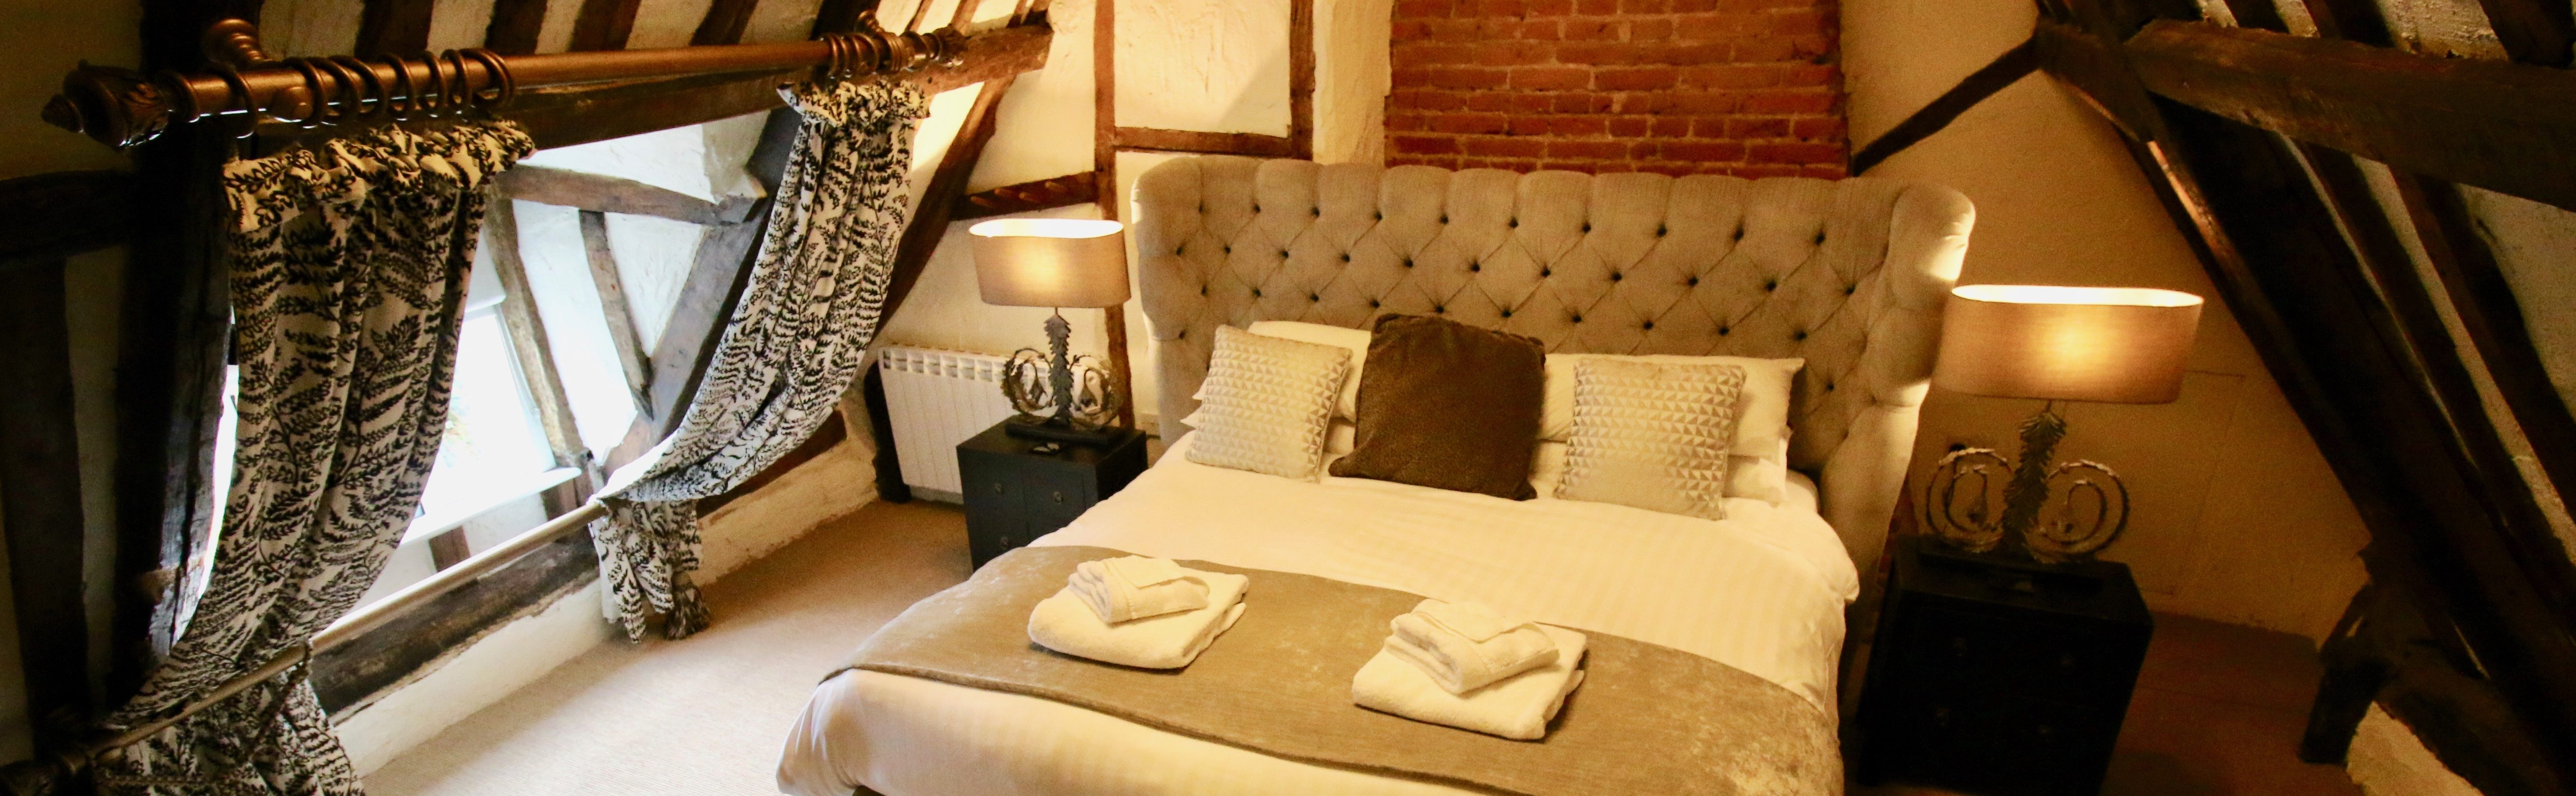 Luxury B&B rooms - 10% off when you stay for 2 nights Friday - Sunday